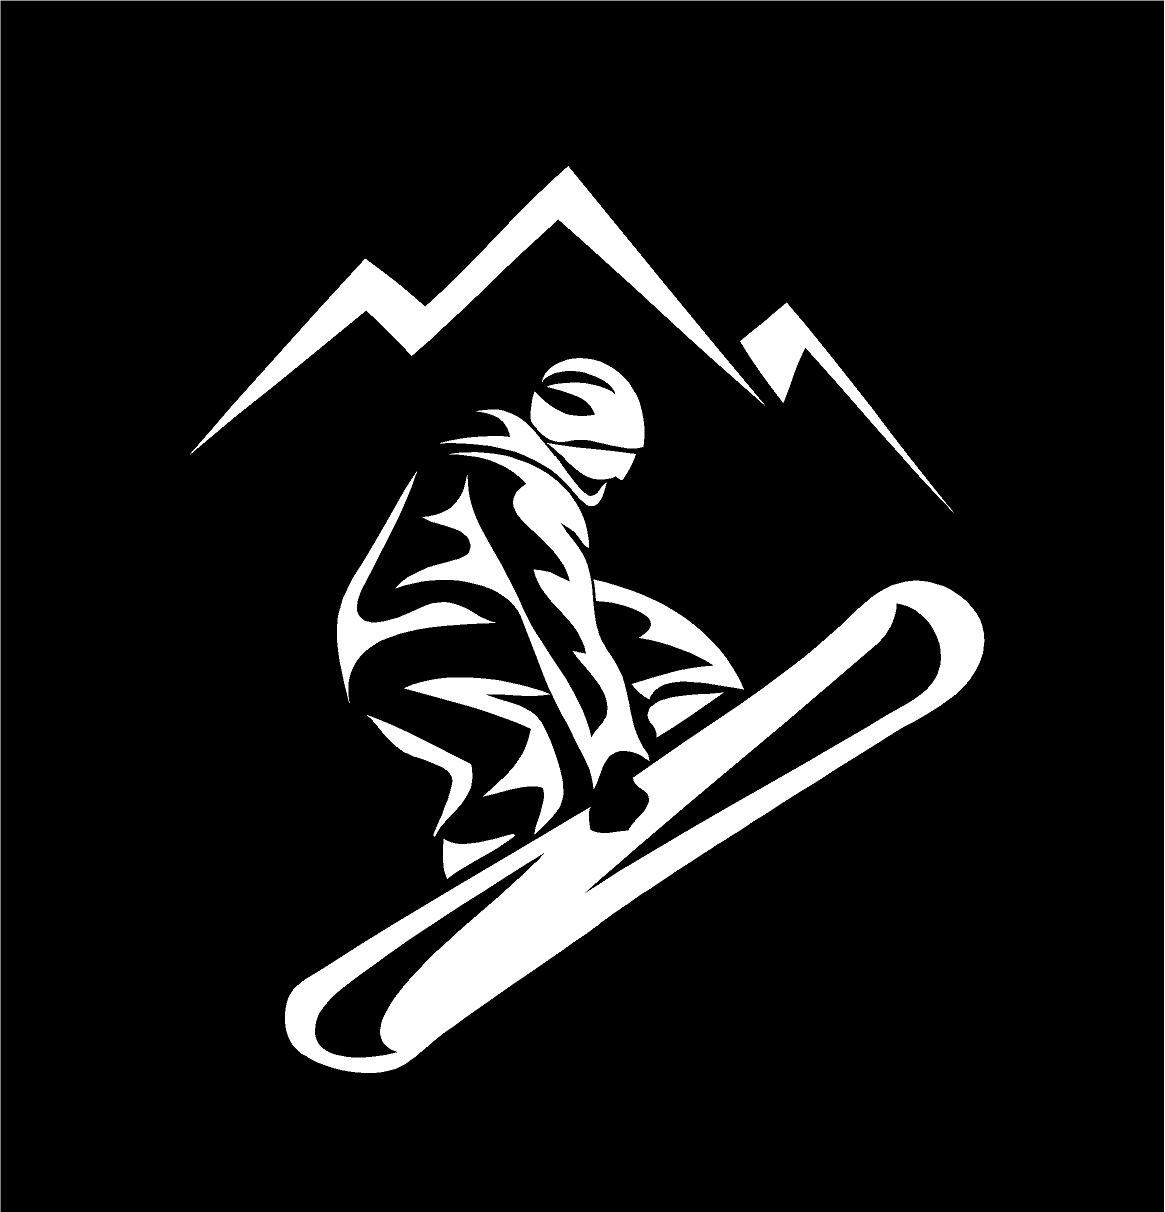 Excited To Share This Item From My Etsy Shop Snow Boarder Decal Snow Boarding Decal Snow Board Decal Snow Board Snowboard Stickers Snowboarding Custom Vinyl [ 1212 x 1165 Pixel ]